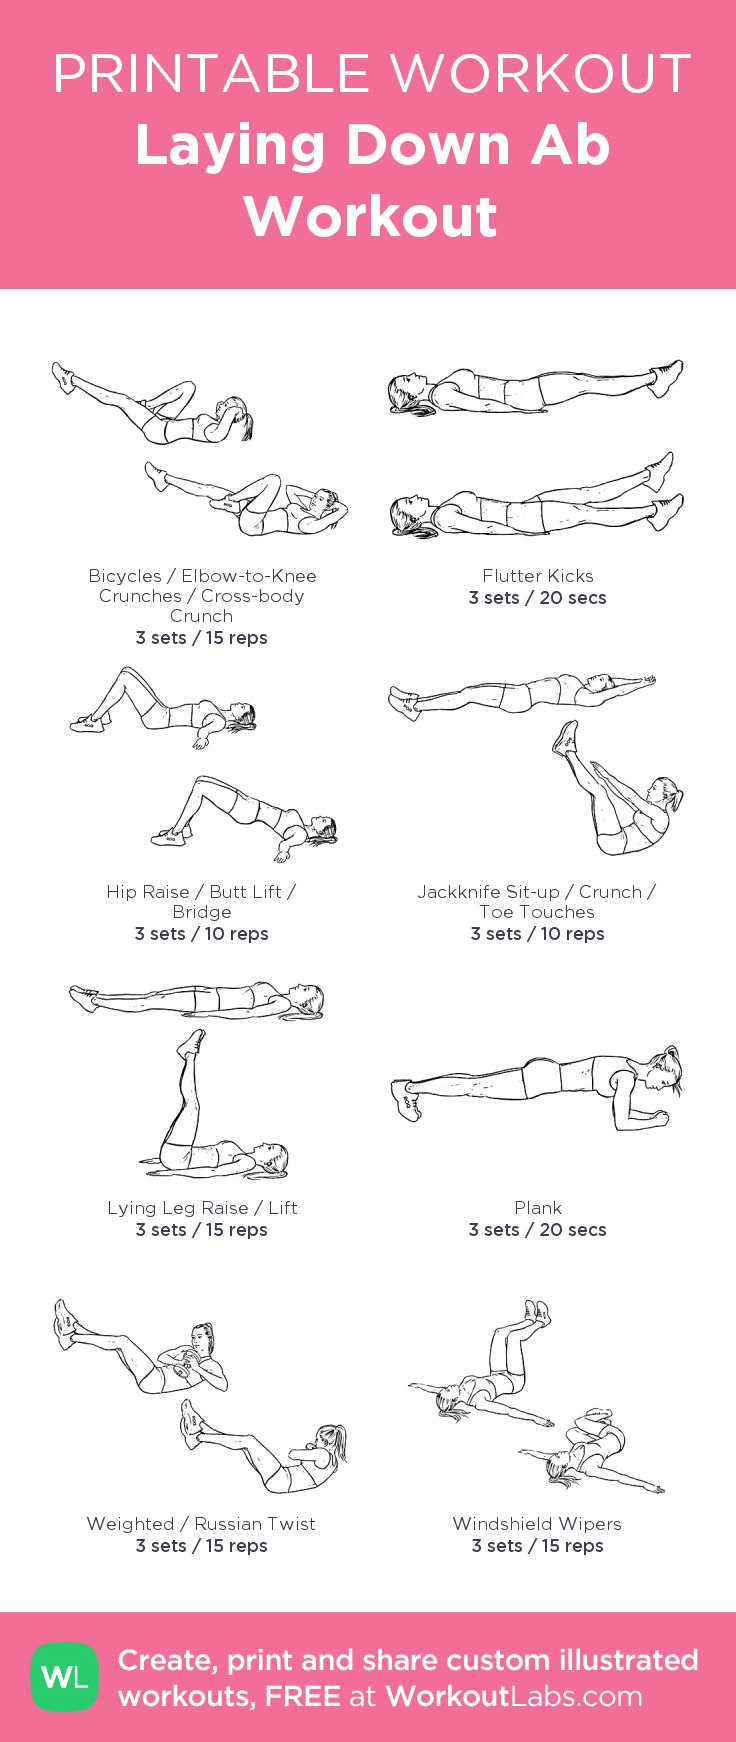 Laying Down Ab Workout. Easy, fast, and fun. #FITGirl #Health #FITness